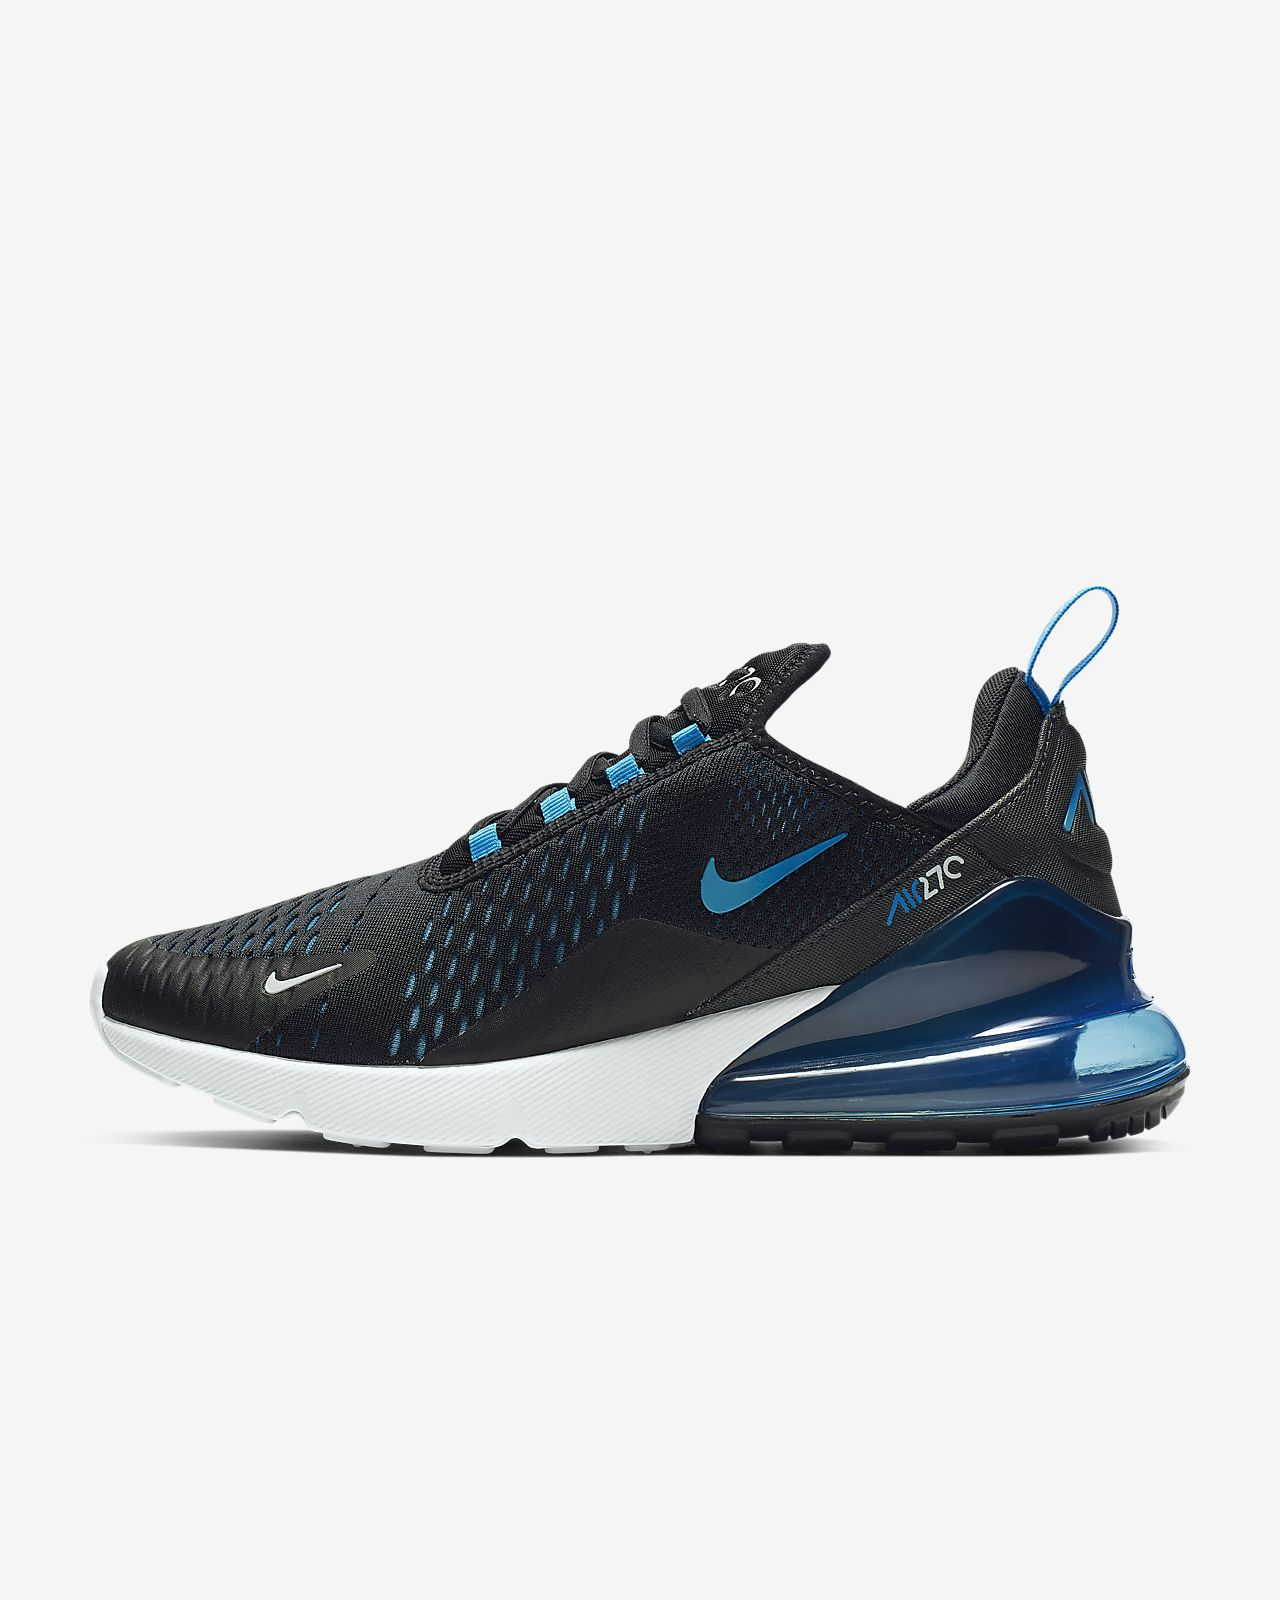 new concept afe7d 52311 ... Nike Air Max 270 Herrenschuh